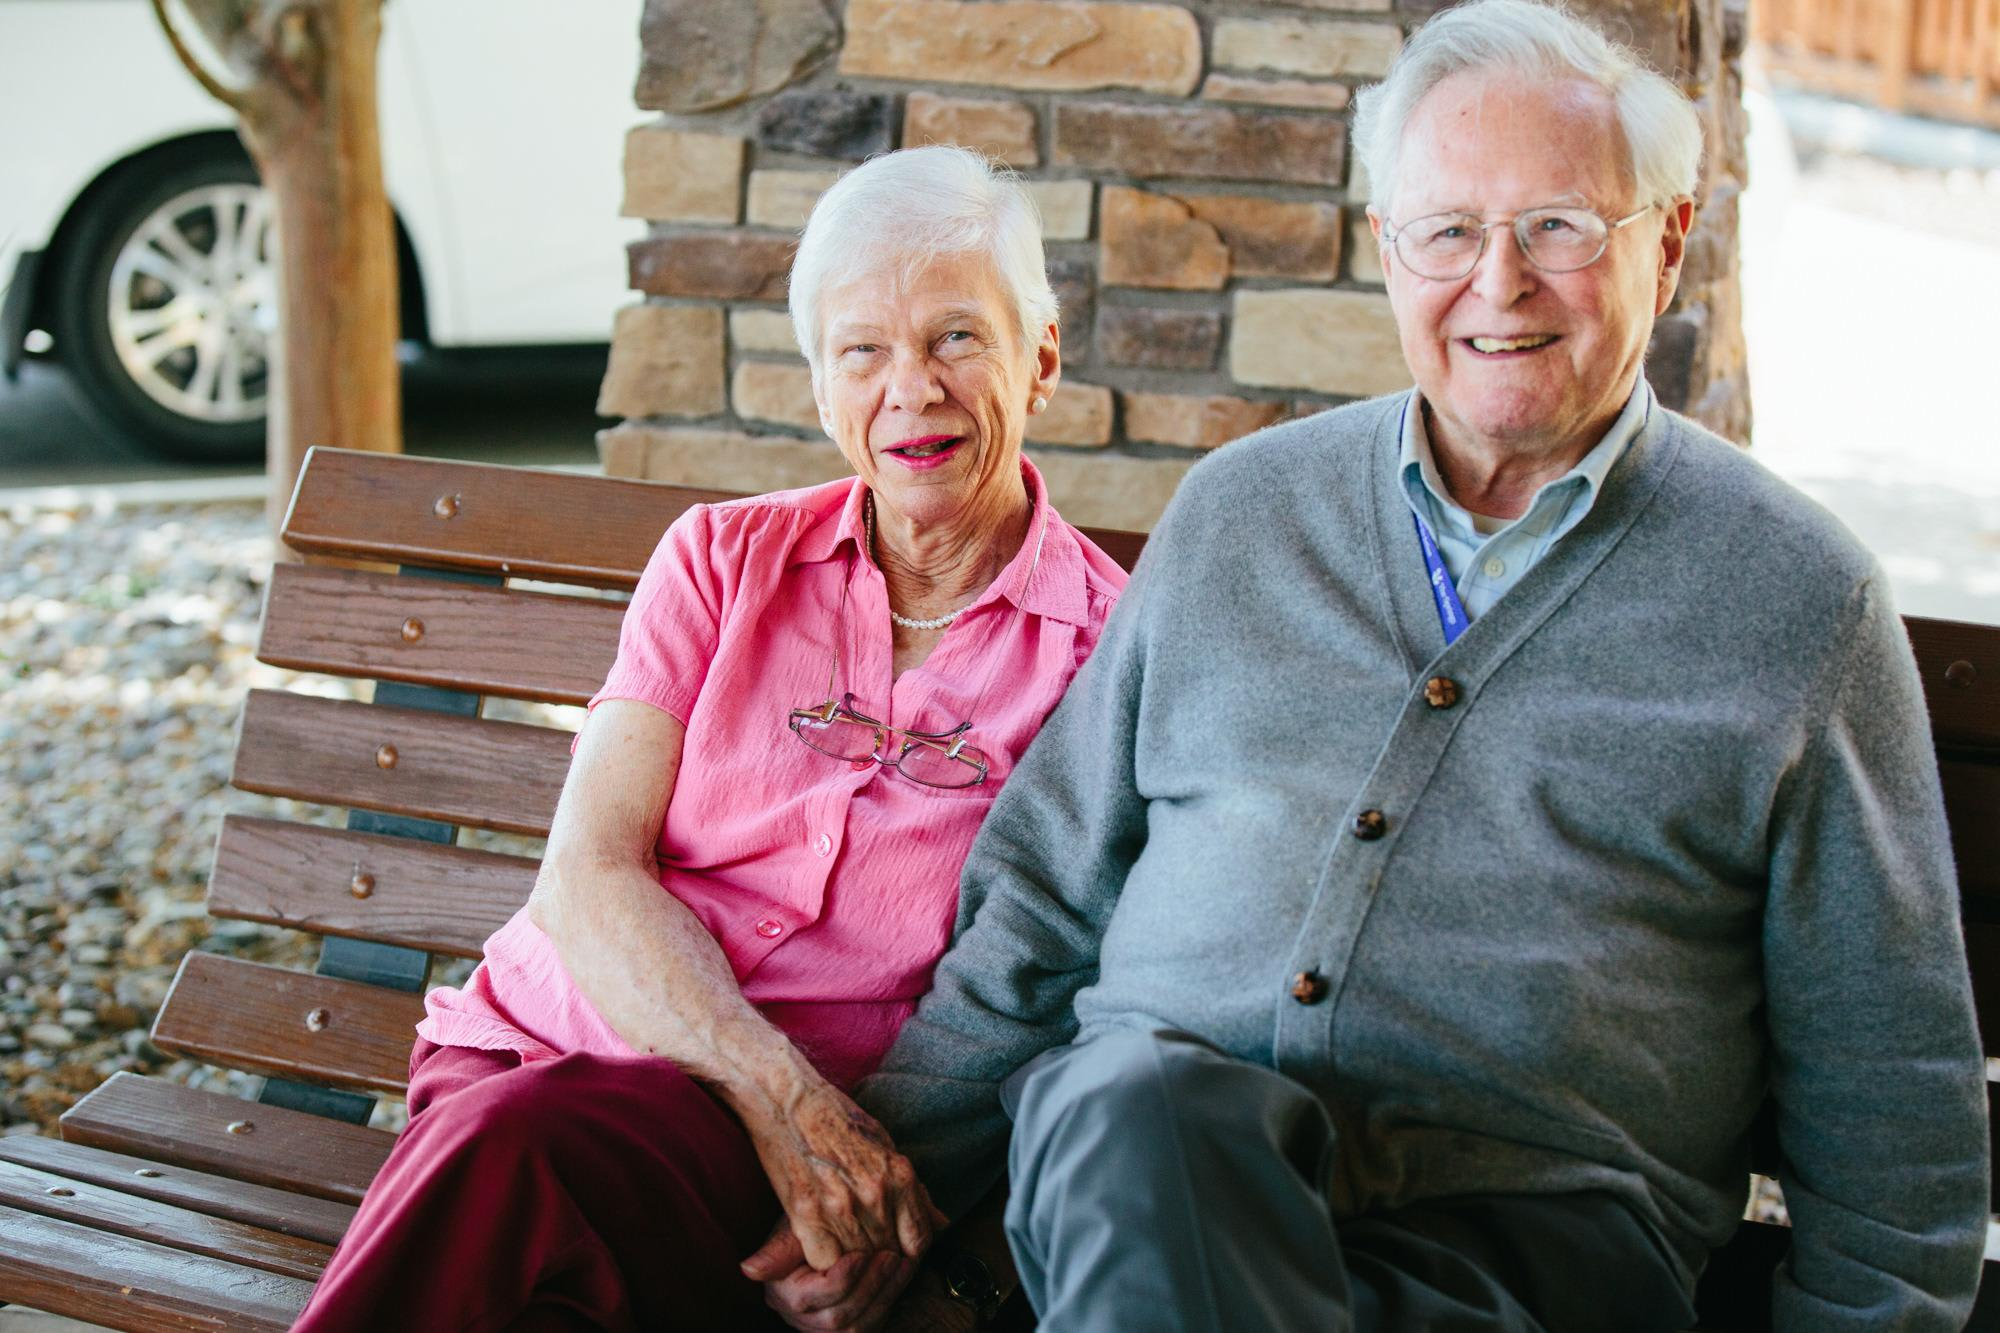 Residents enjoy a quiet moment together in Missoula